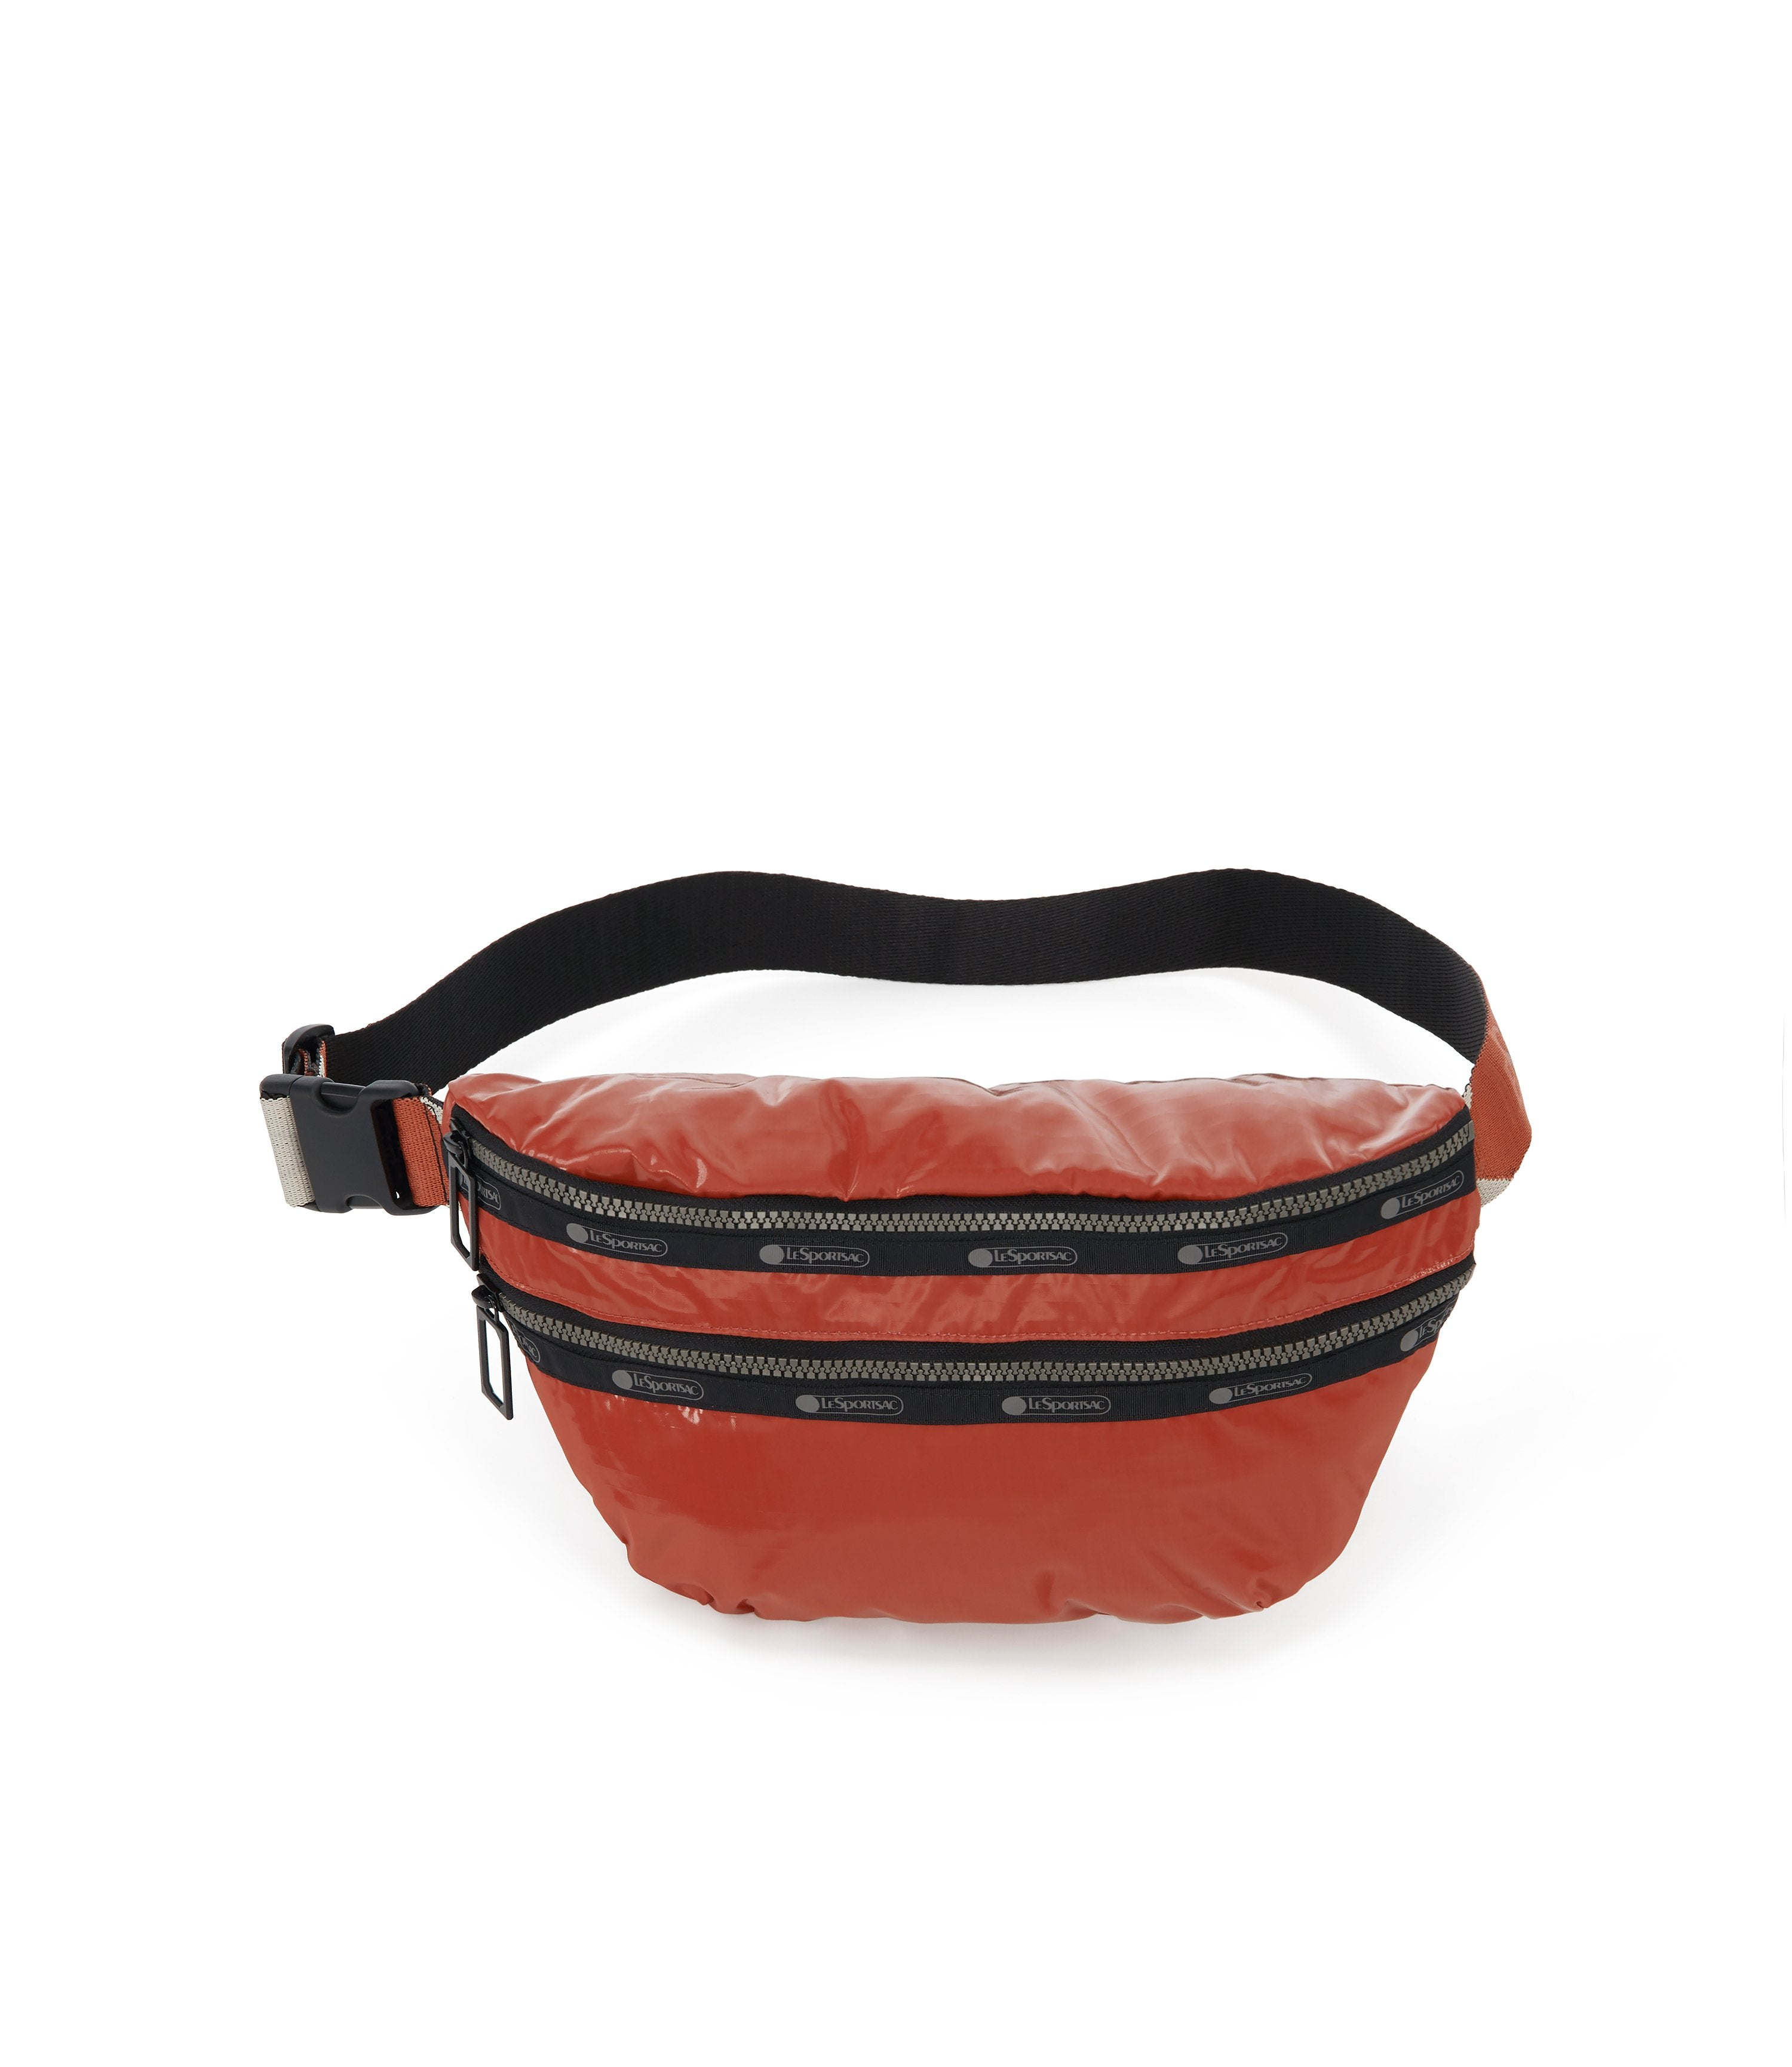 Heritage Belt Bag, Accessories, Makeup and Cosmetic Bags, LeSportsac, Cinnabar Arrow Liquid Patent